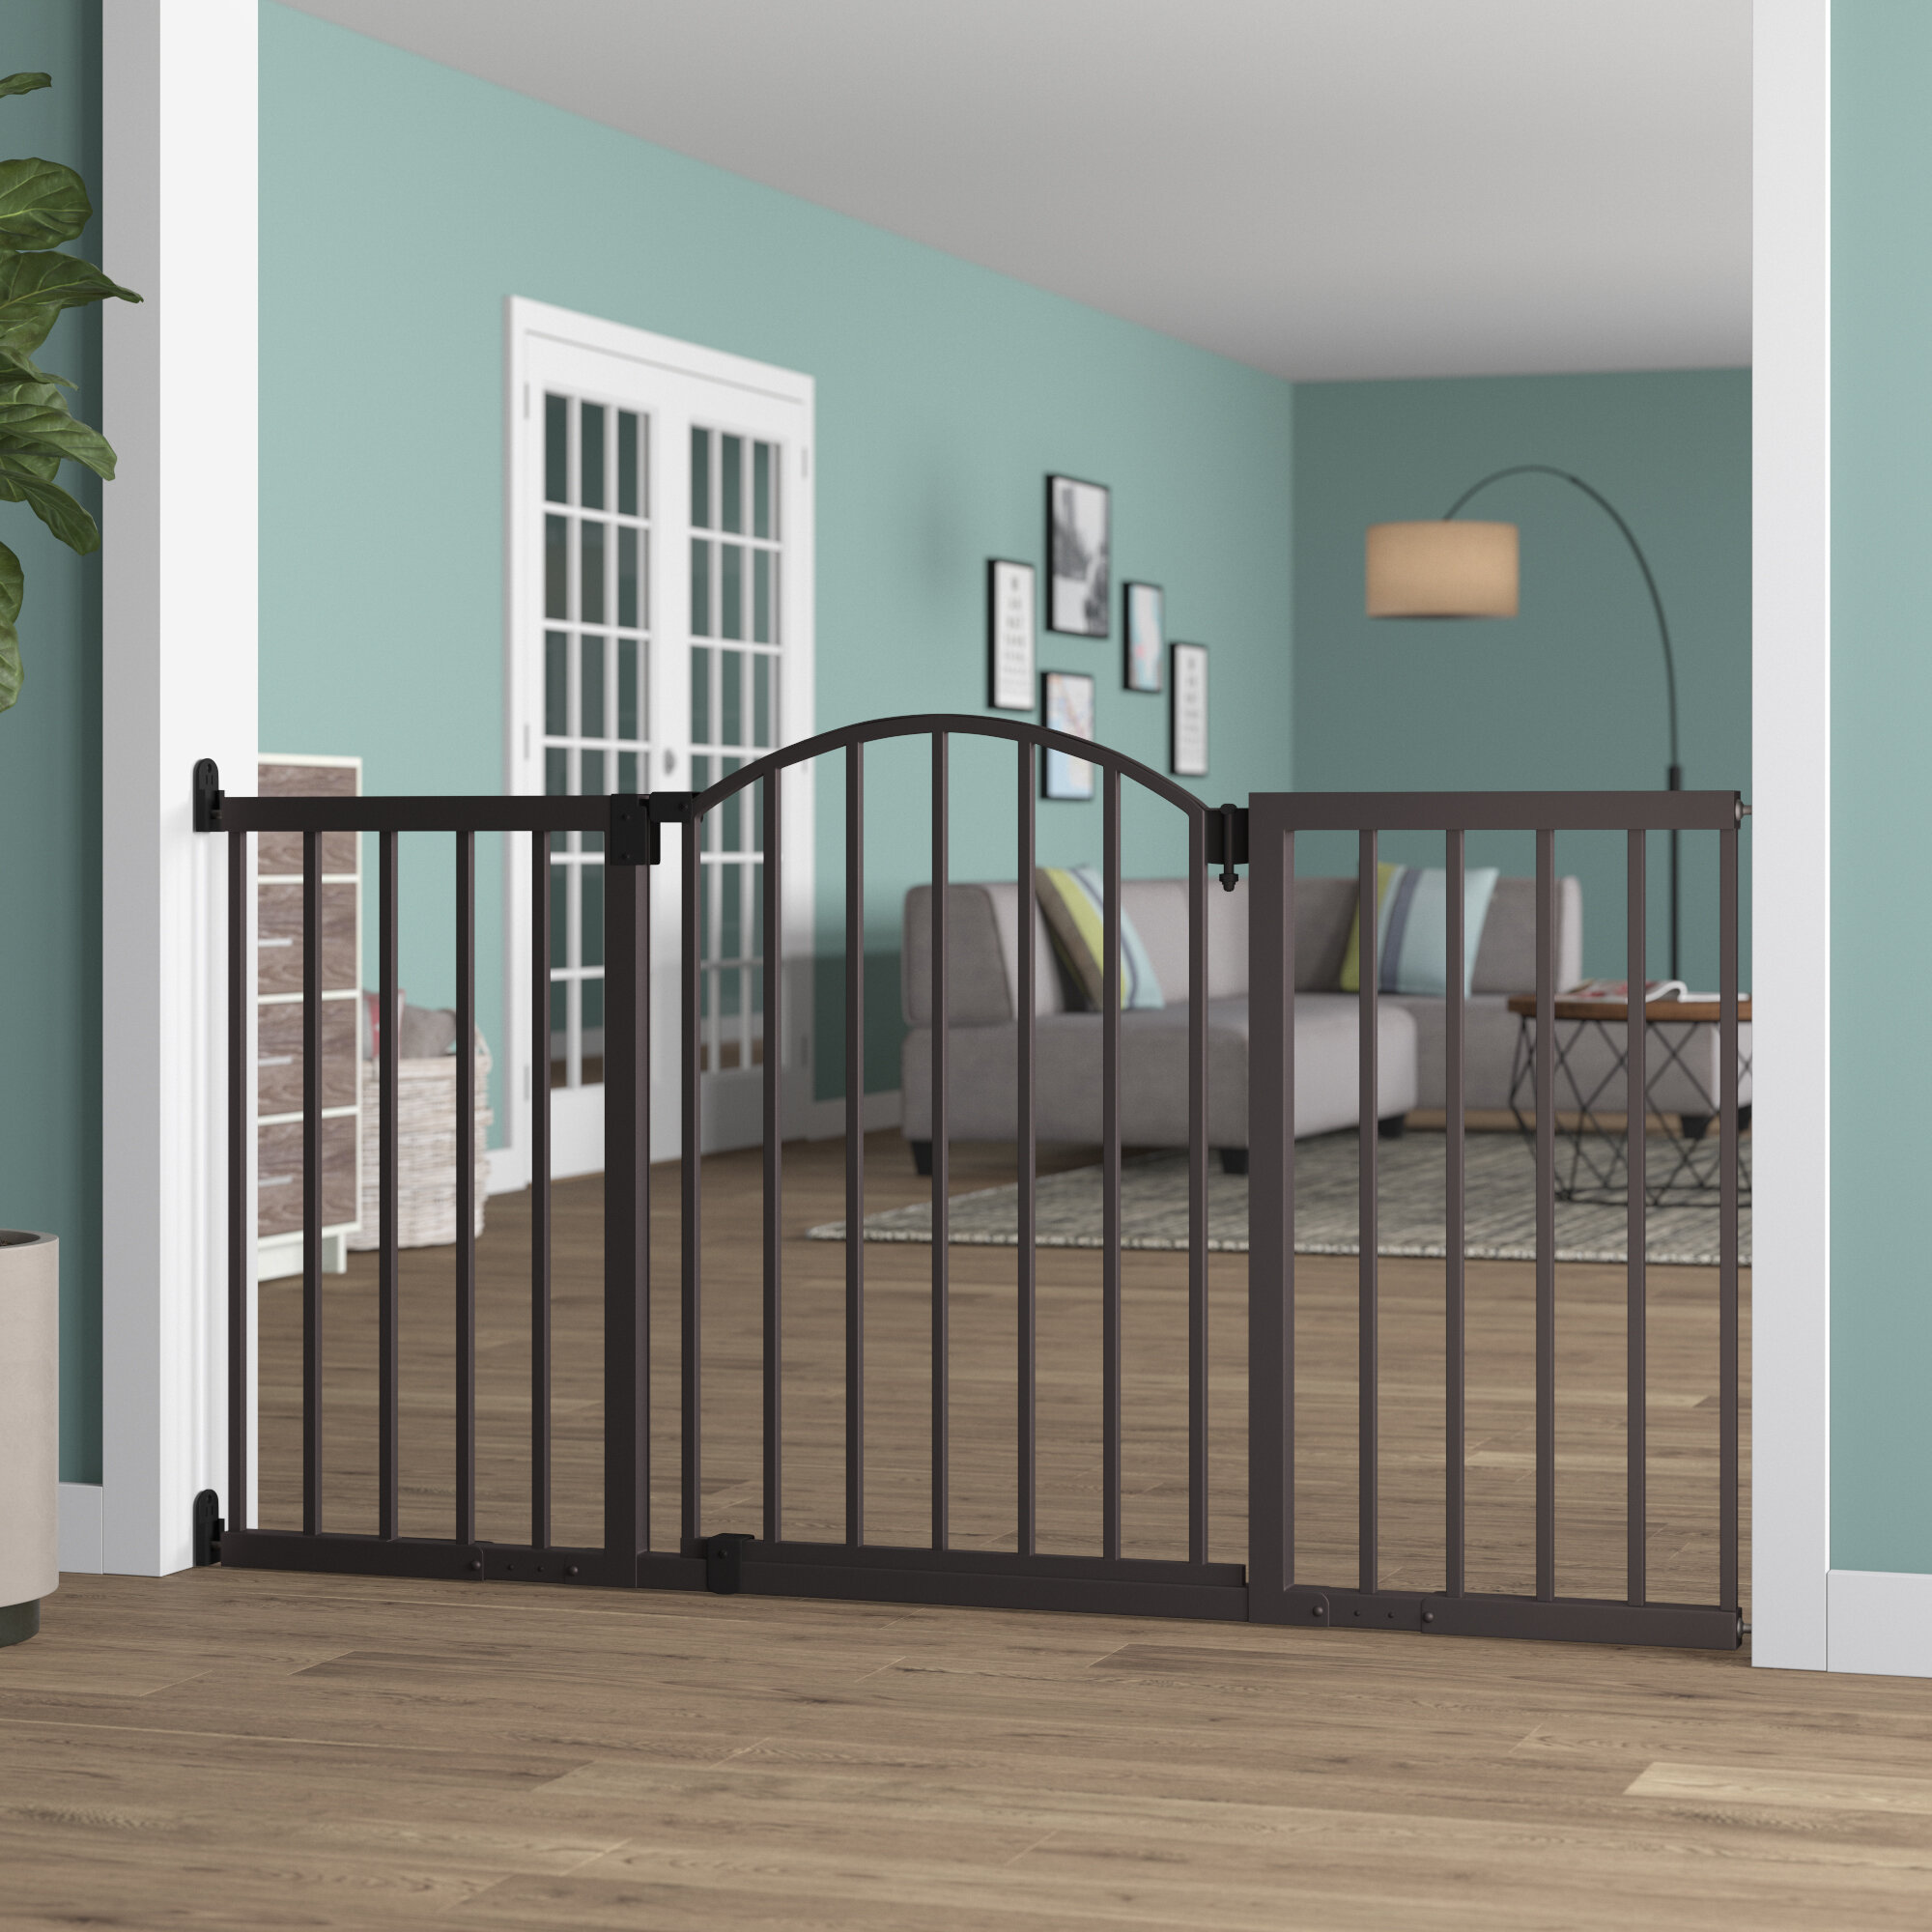 Safety 1st Easy Install Extra Tall and Wide Baby Gate with Pressure Mount